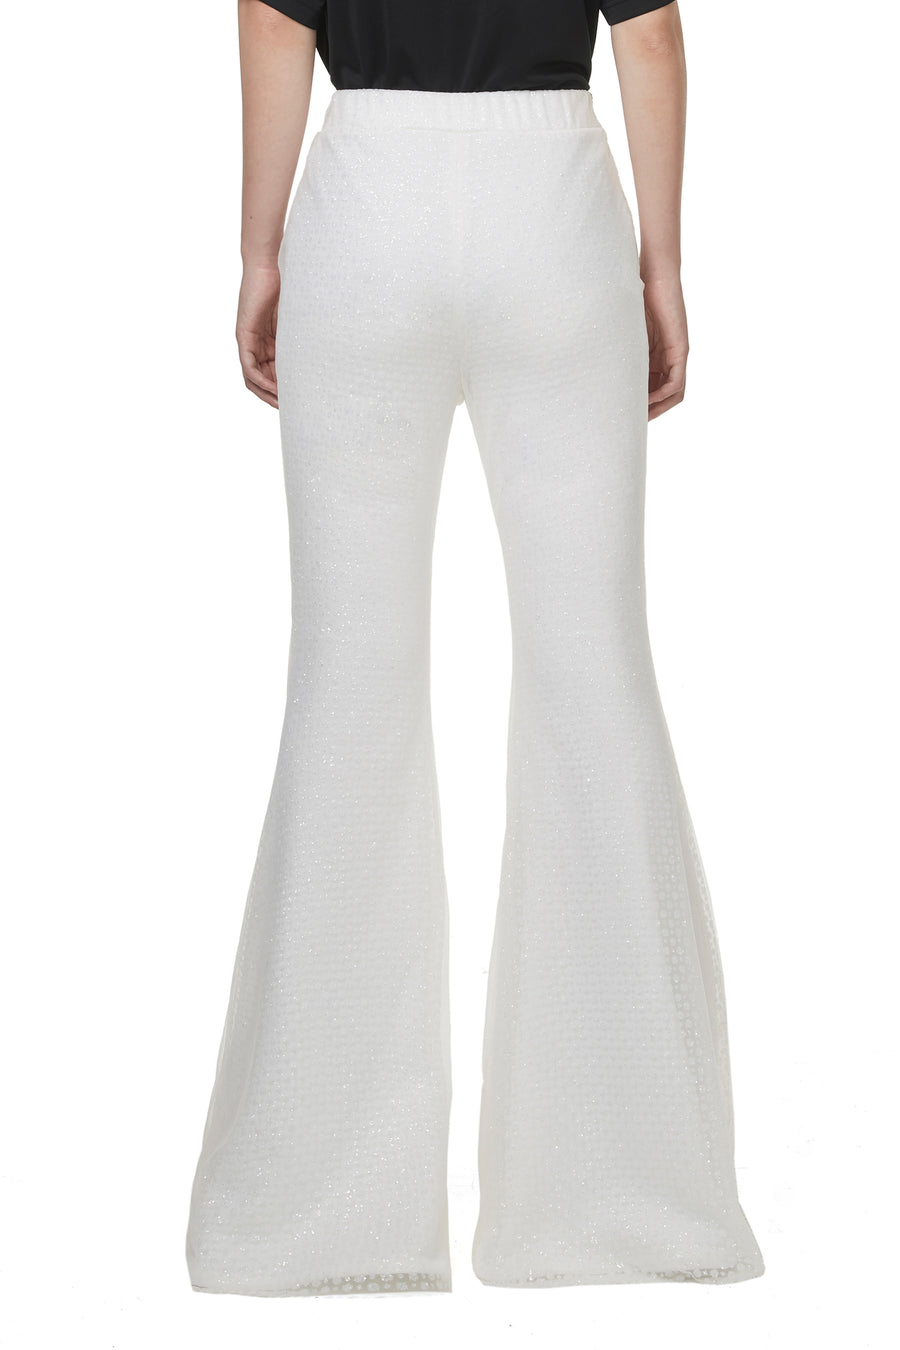 White Sparkling Flare Pants